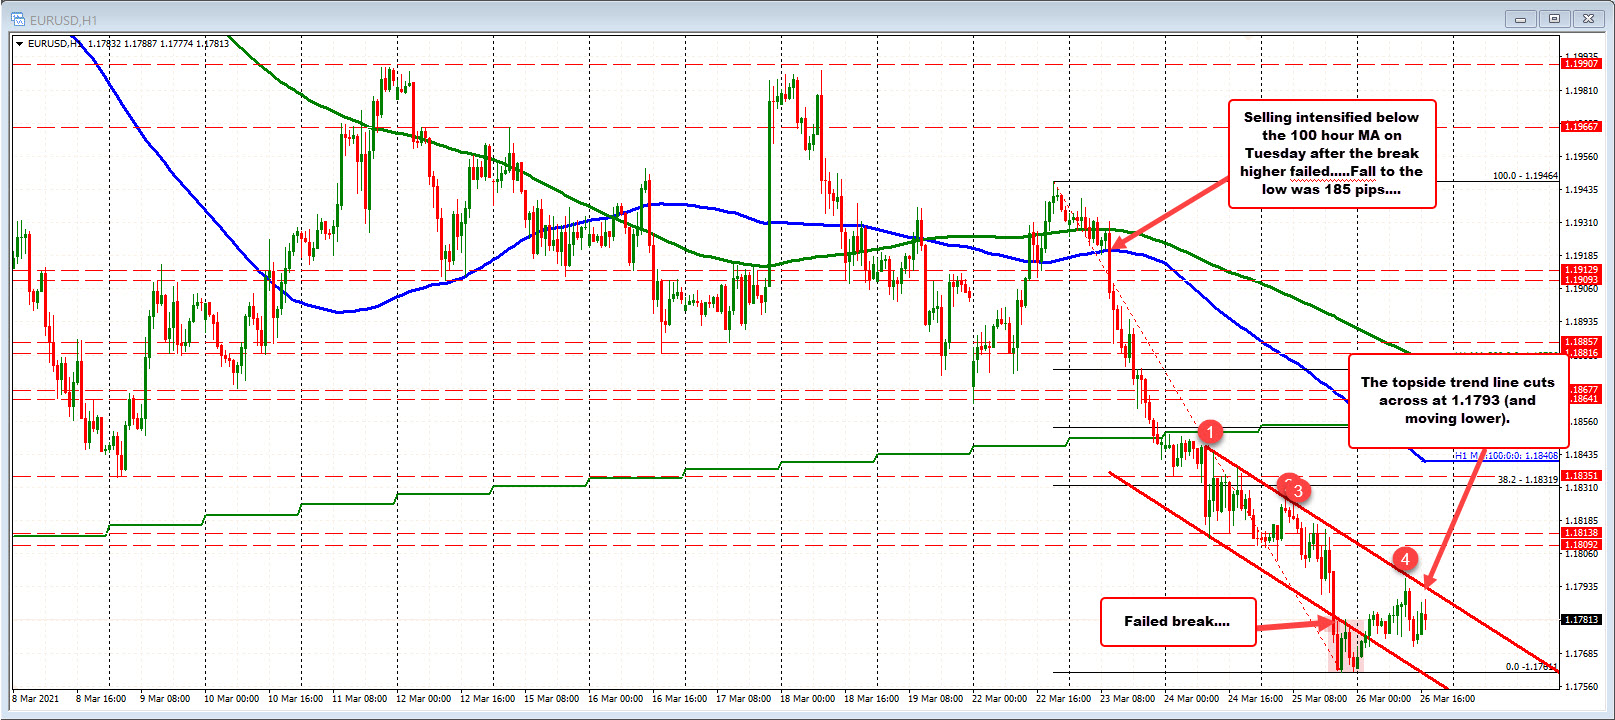 Declines from Tuesday have seen the price move down around 185 pips